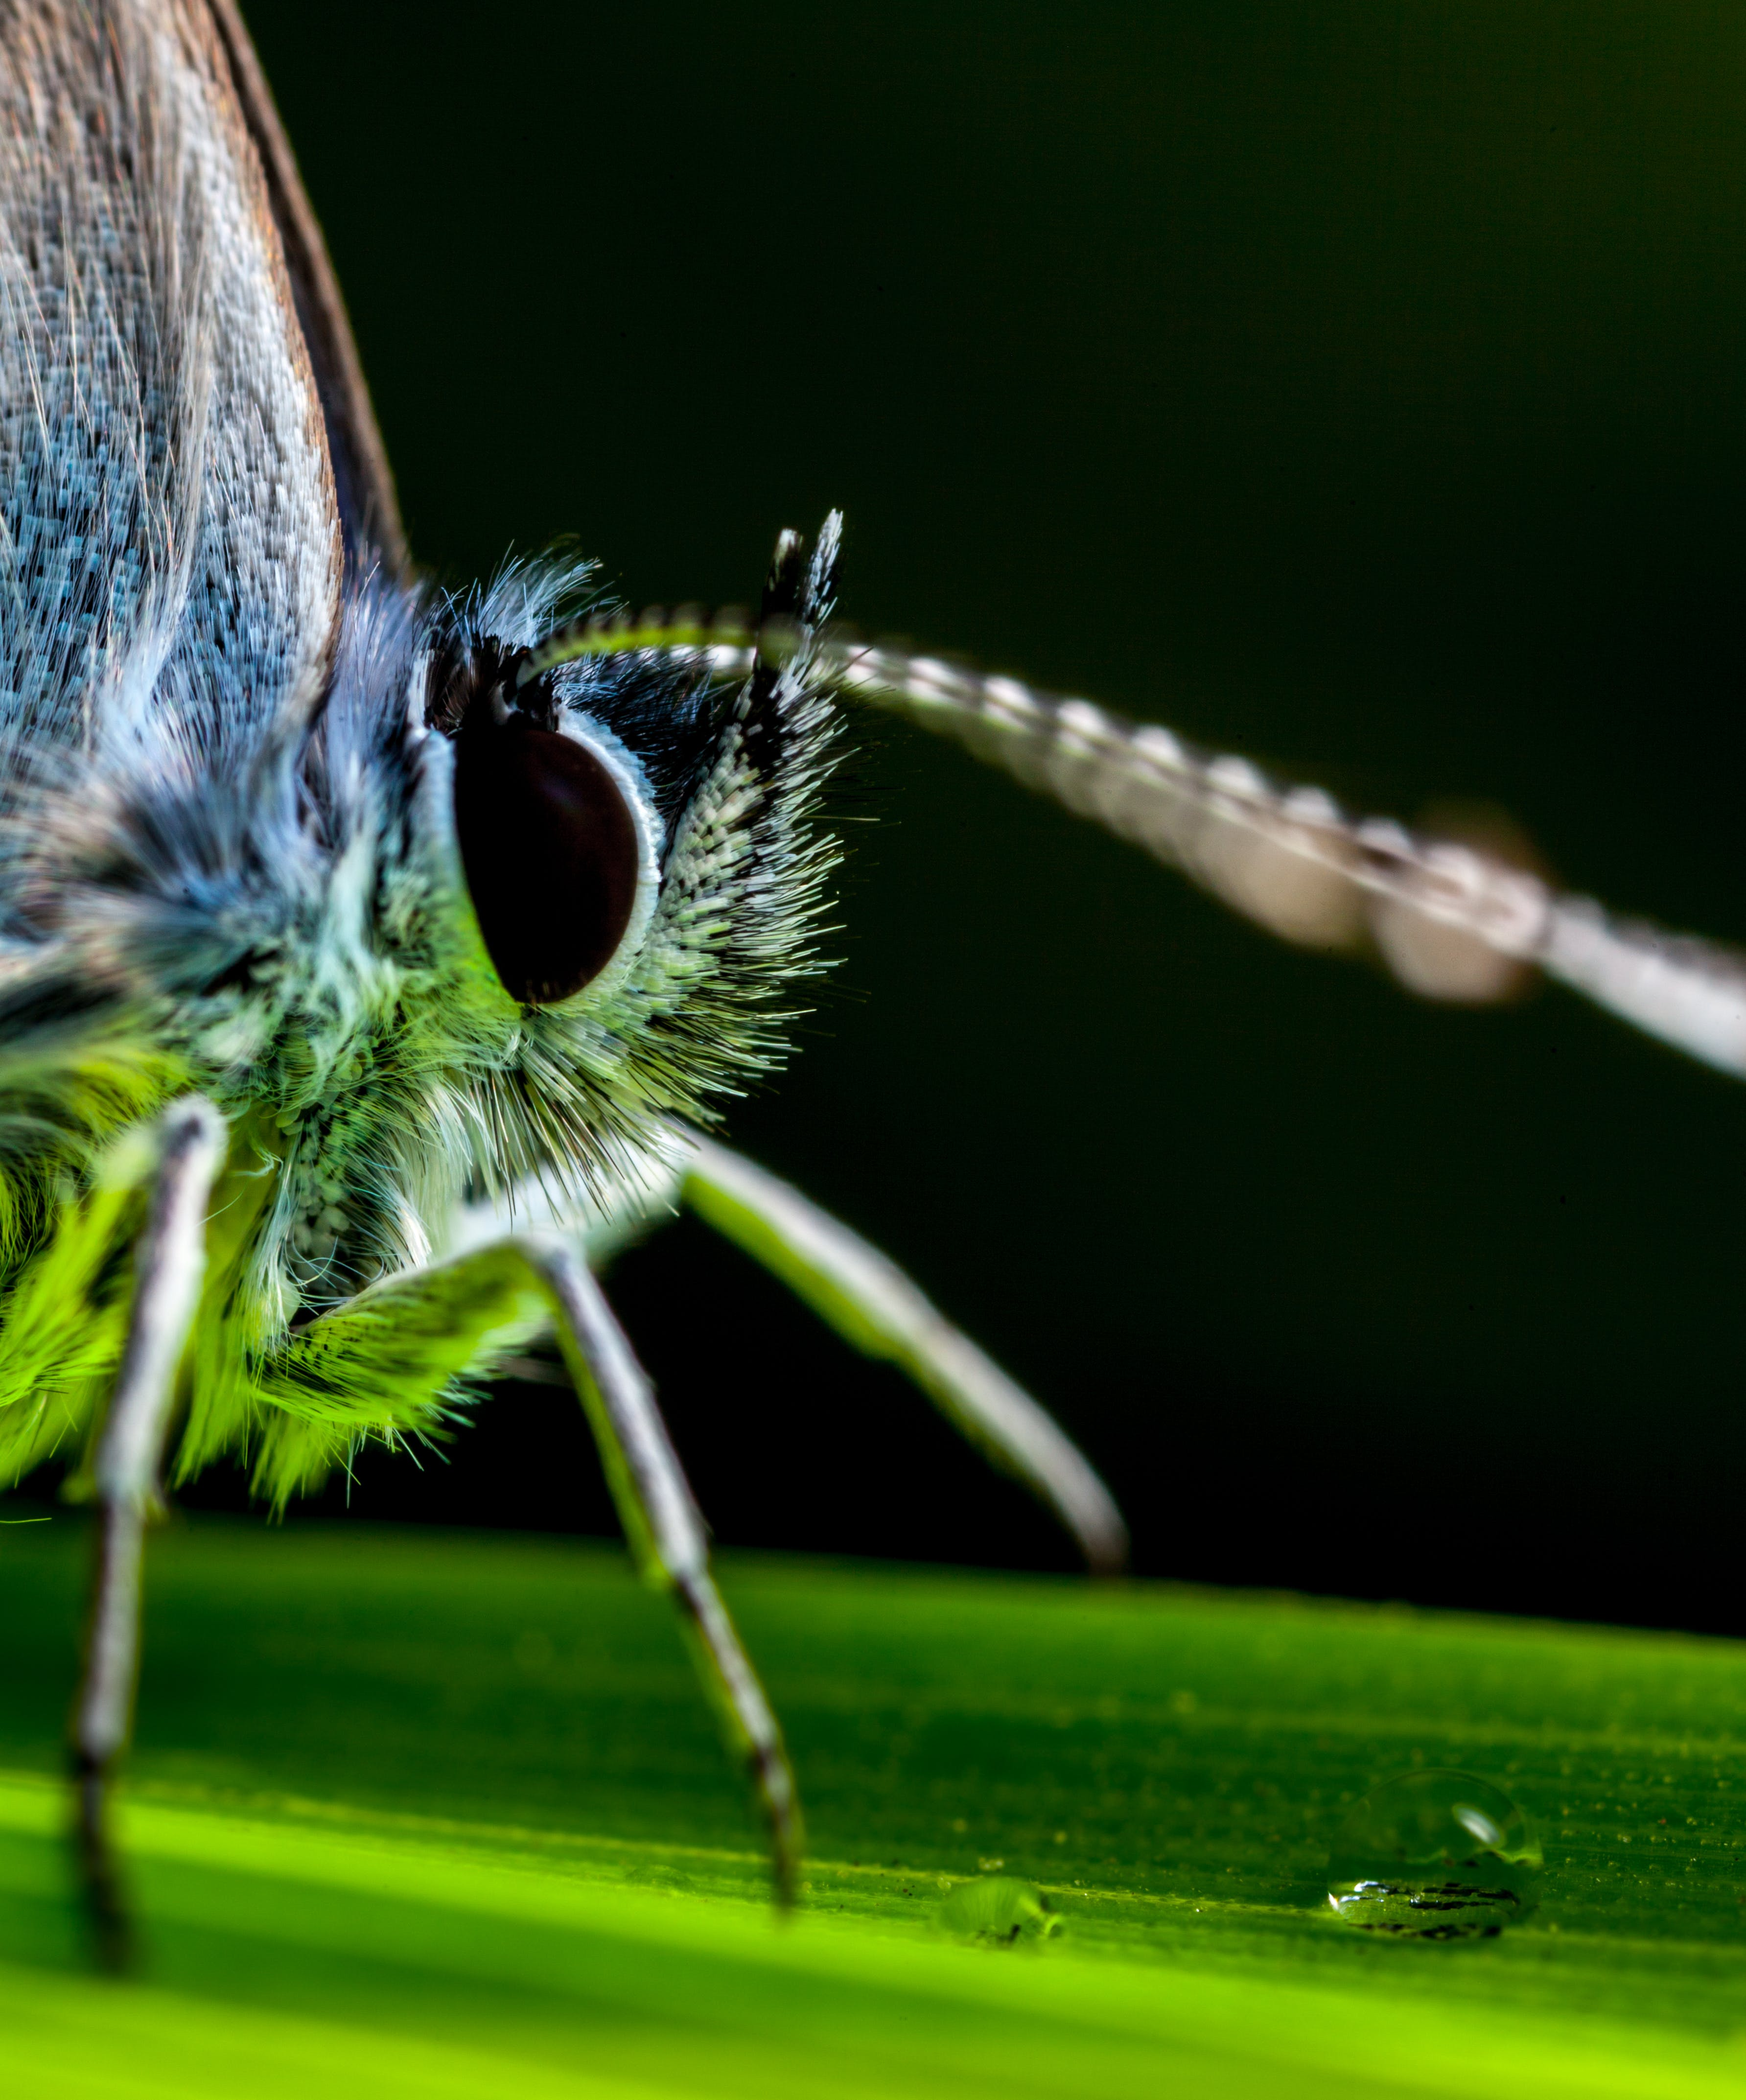 Macro Photography Of Insect Perched On Green Leaf